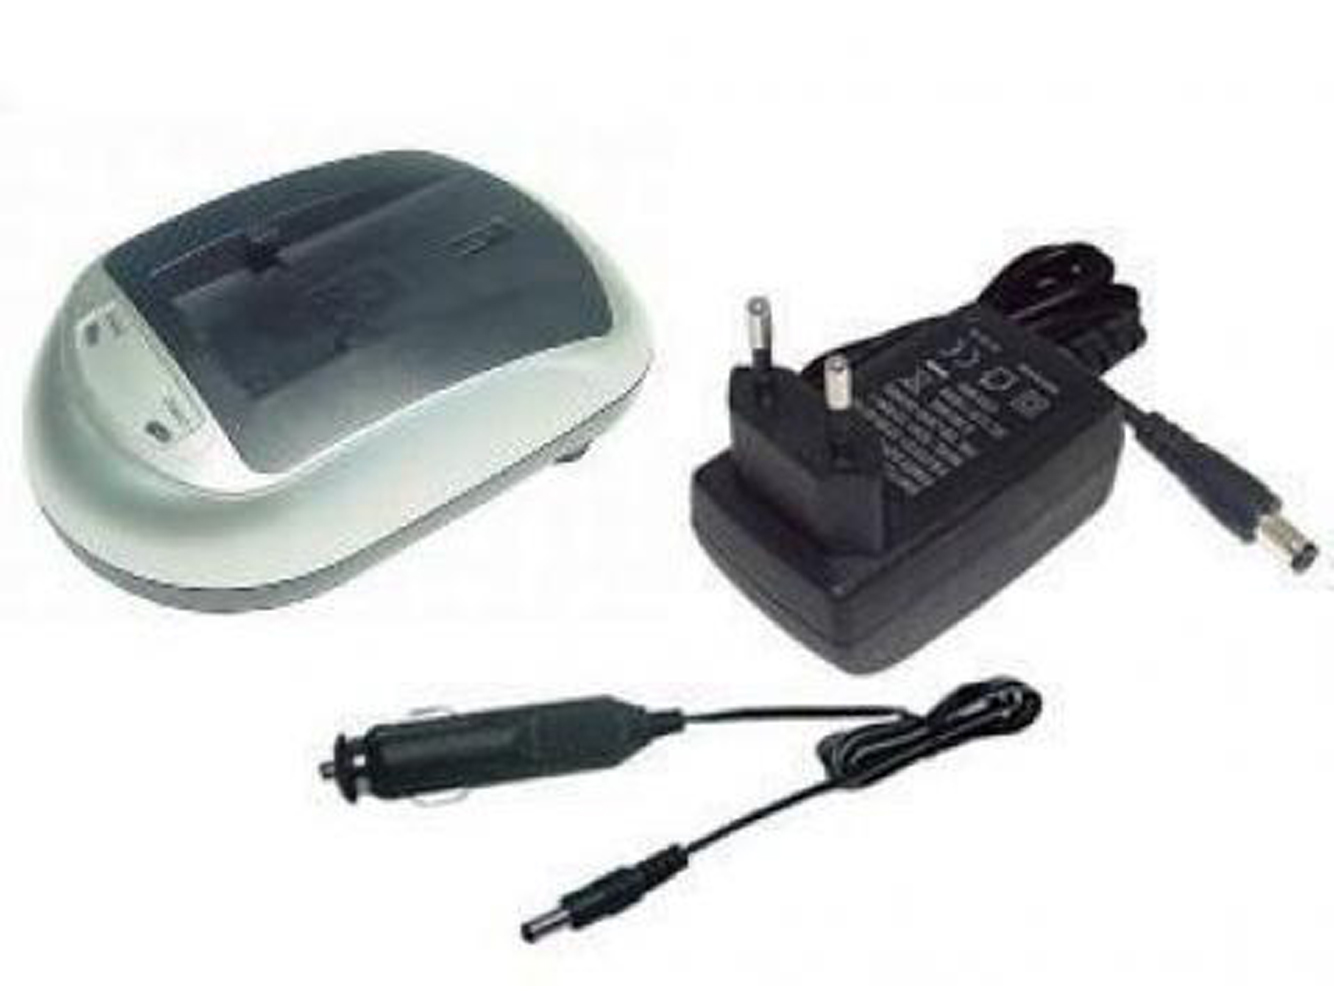 Battery Charger for MINOLTA NP-200